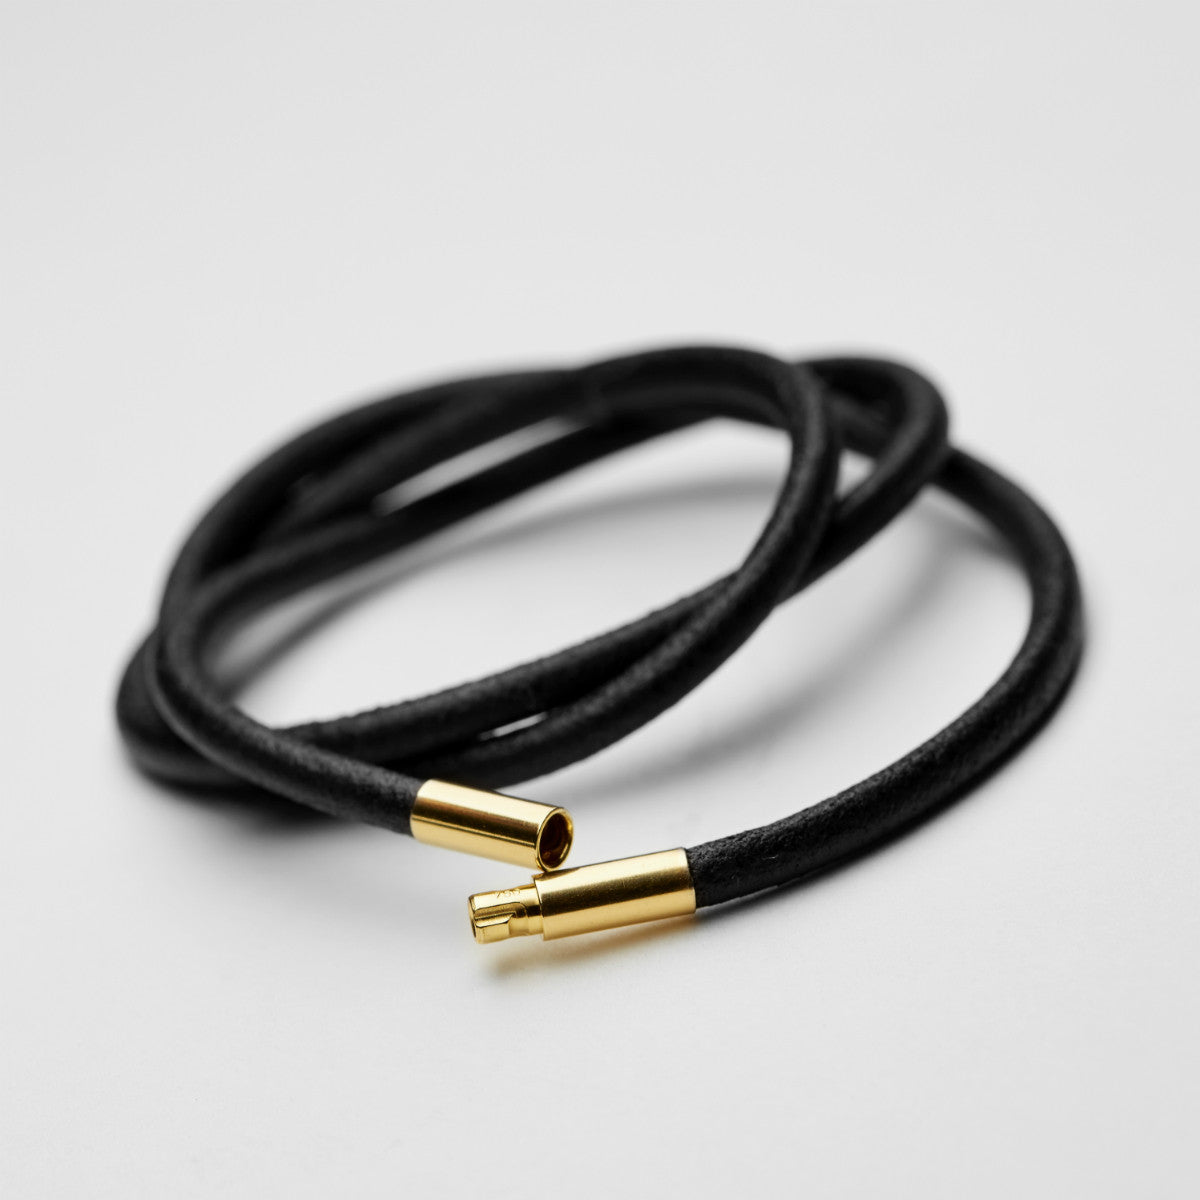 Leather chain 3 mm gold lock